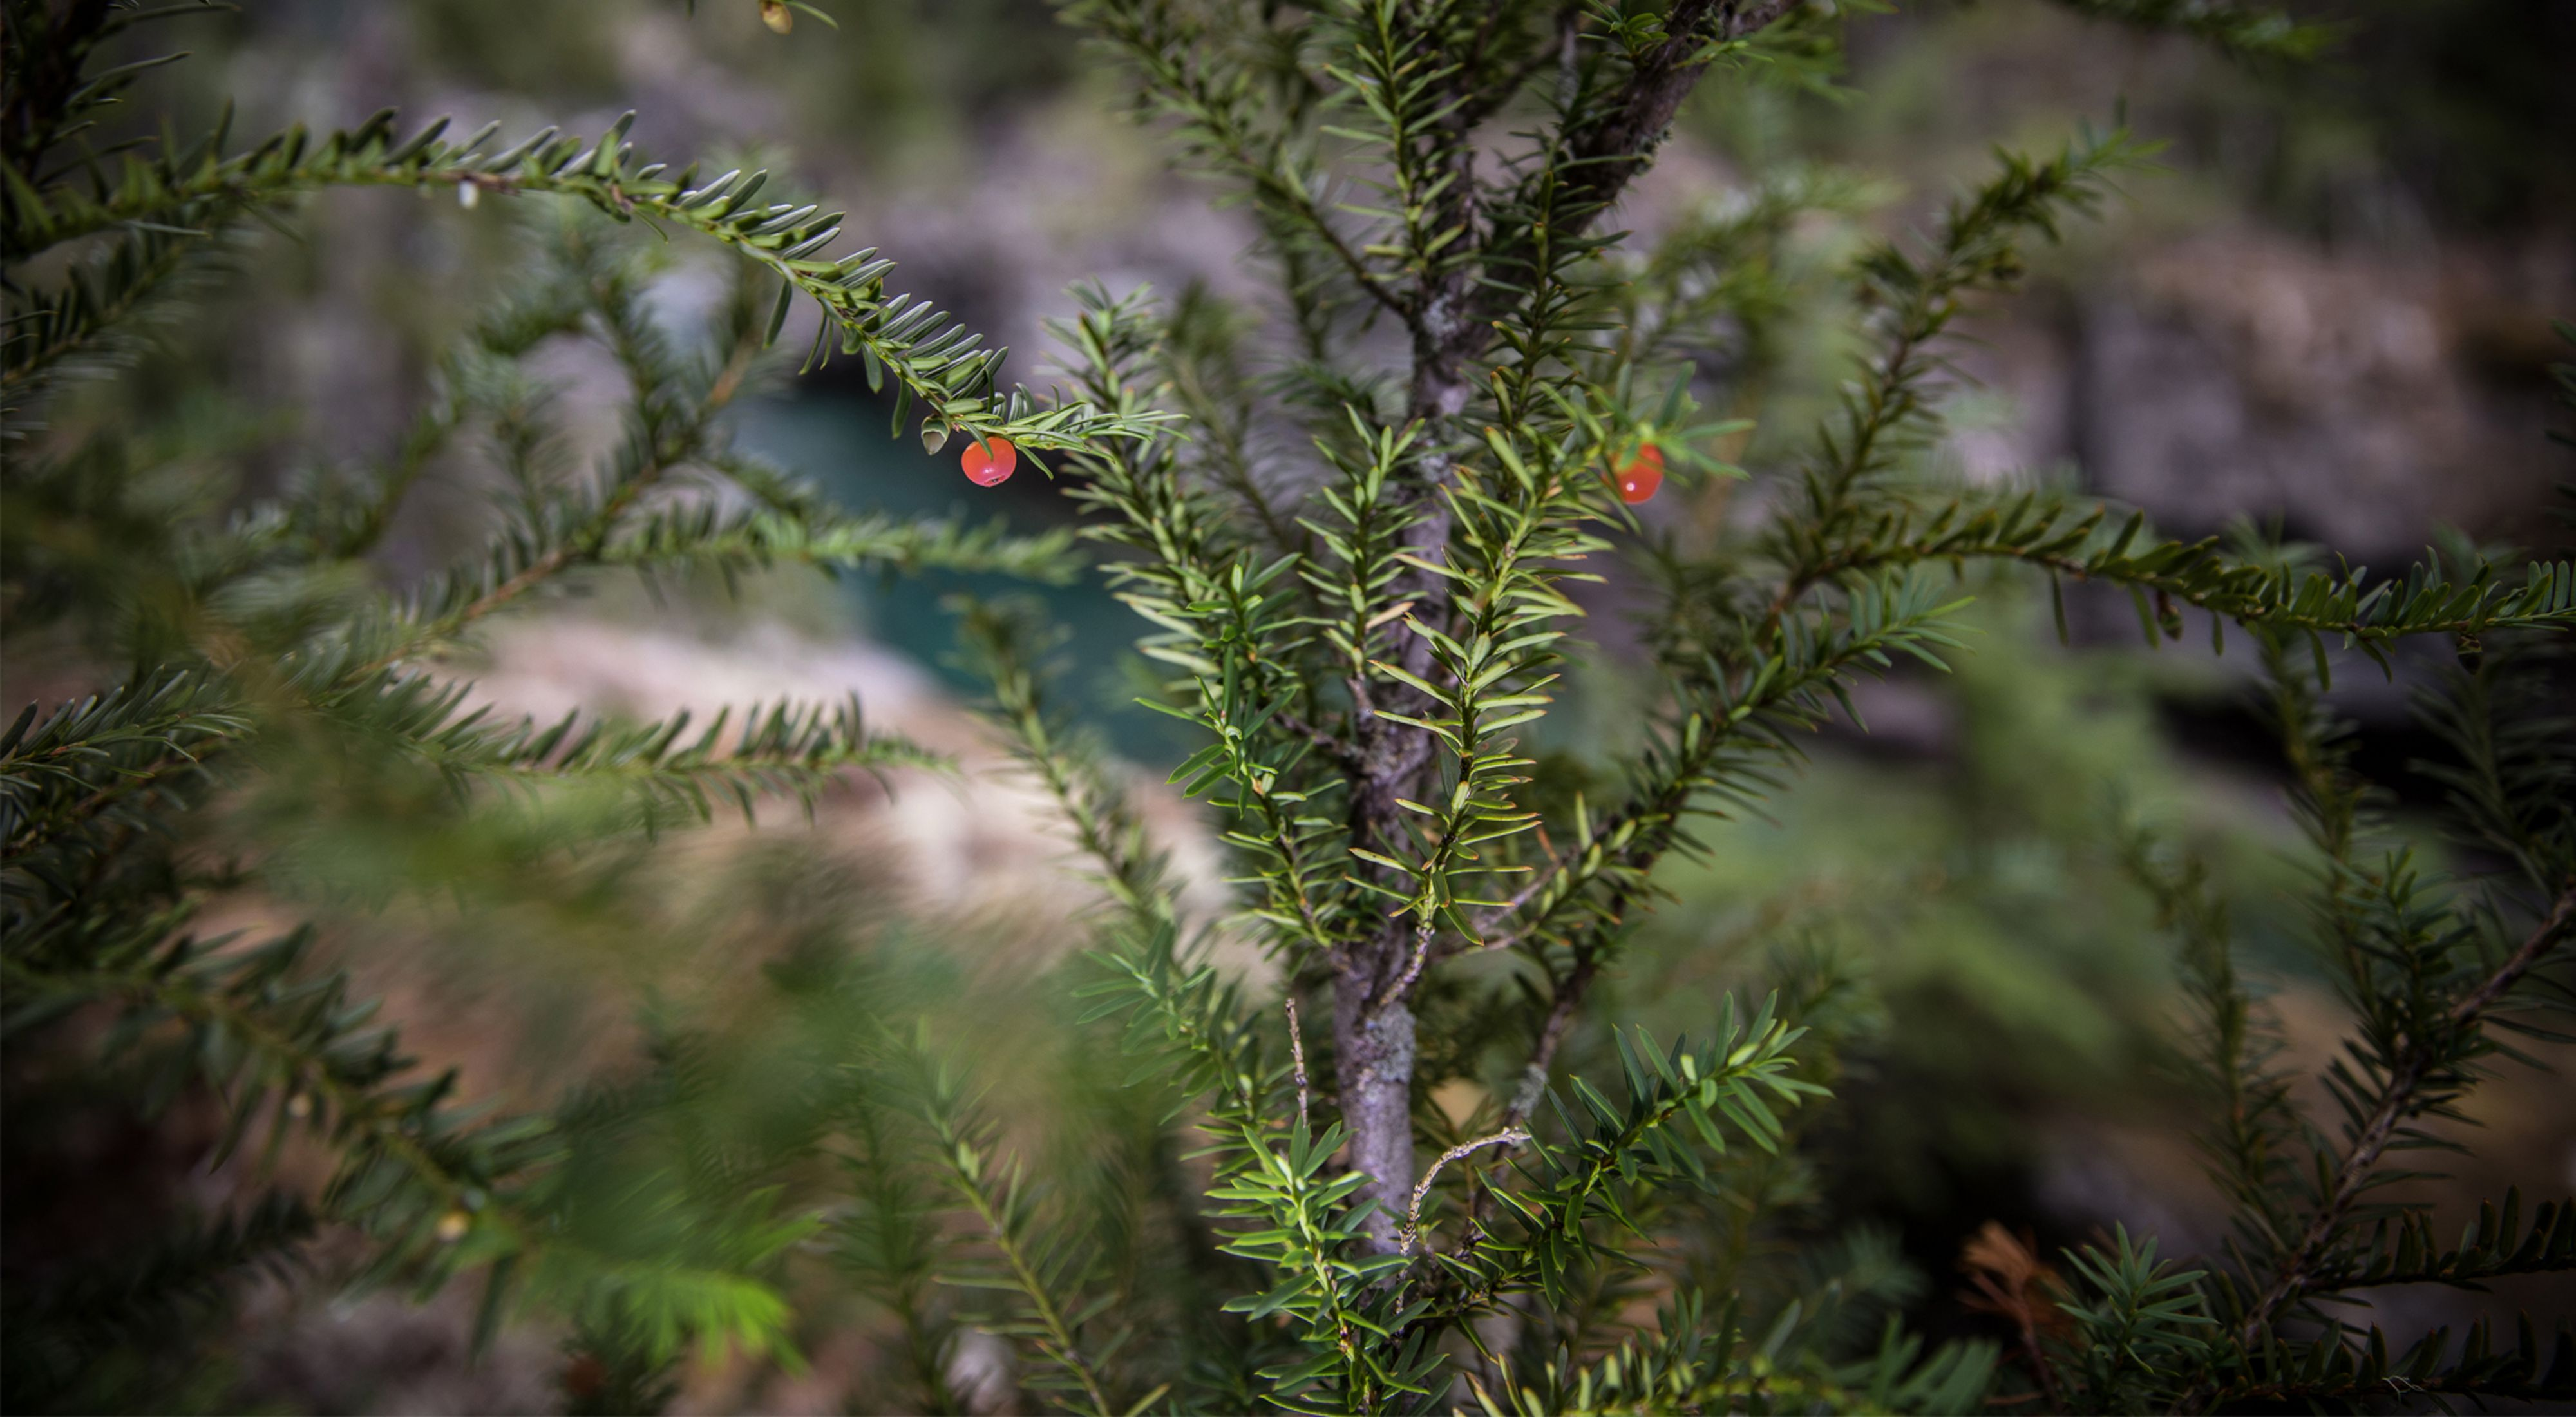 Close-up view of spiky green needles on a pacific yew tree.